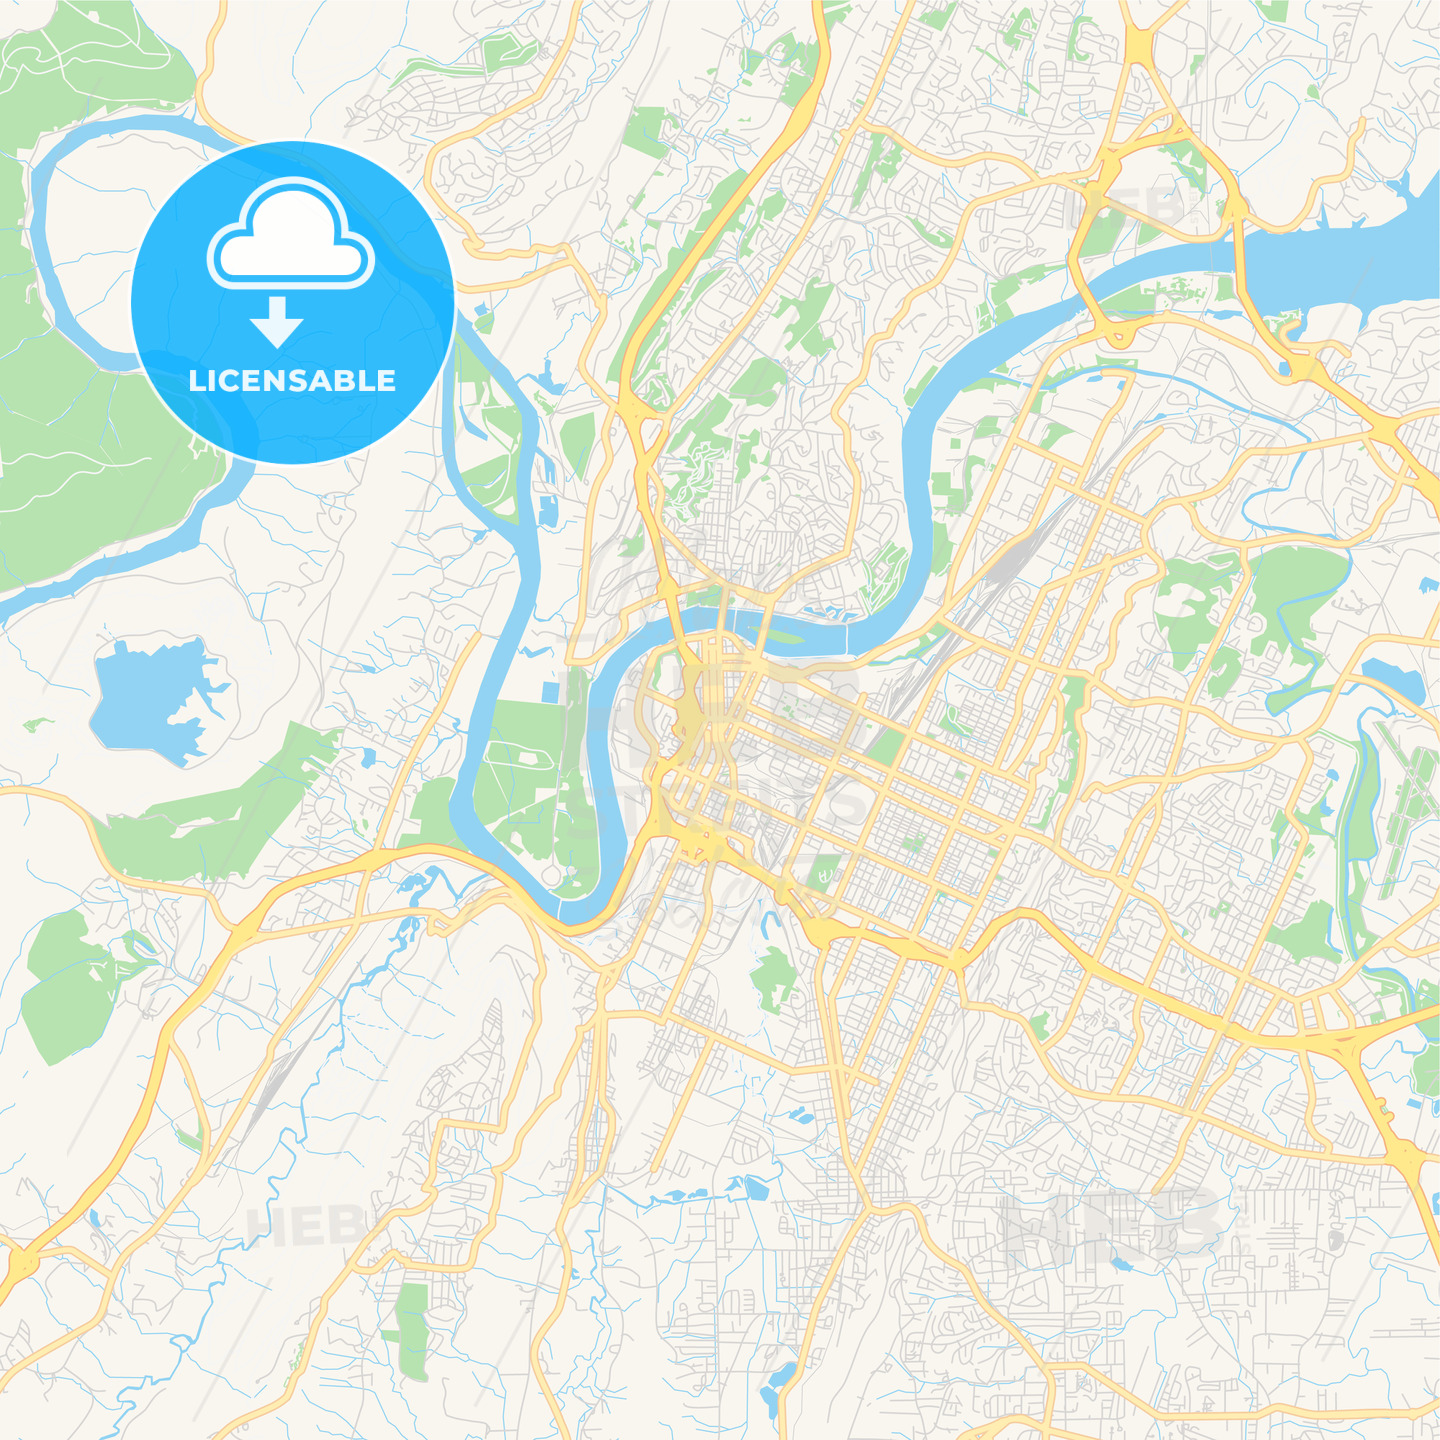 Empty vector map of Chattanooga, Tennessee, USA | HEBSTREITS Sketches